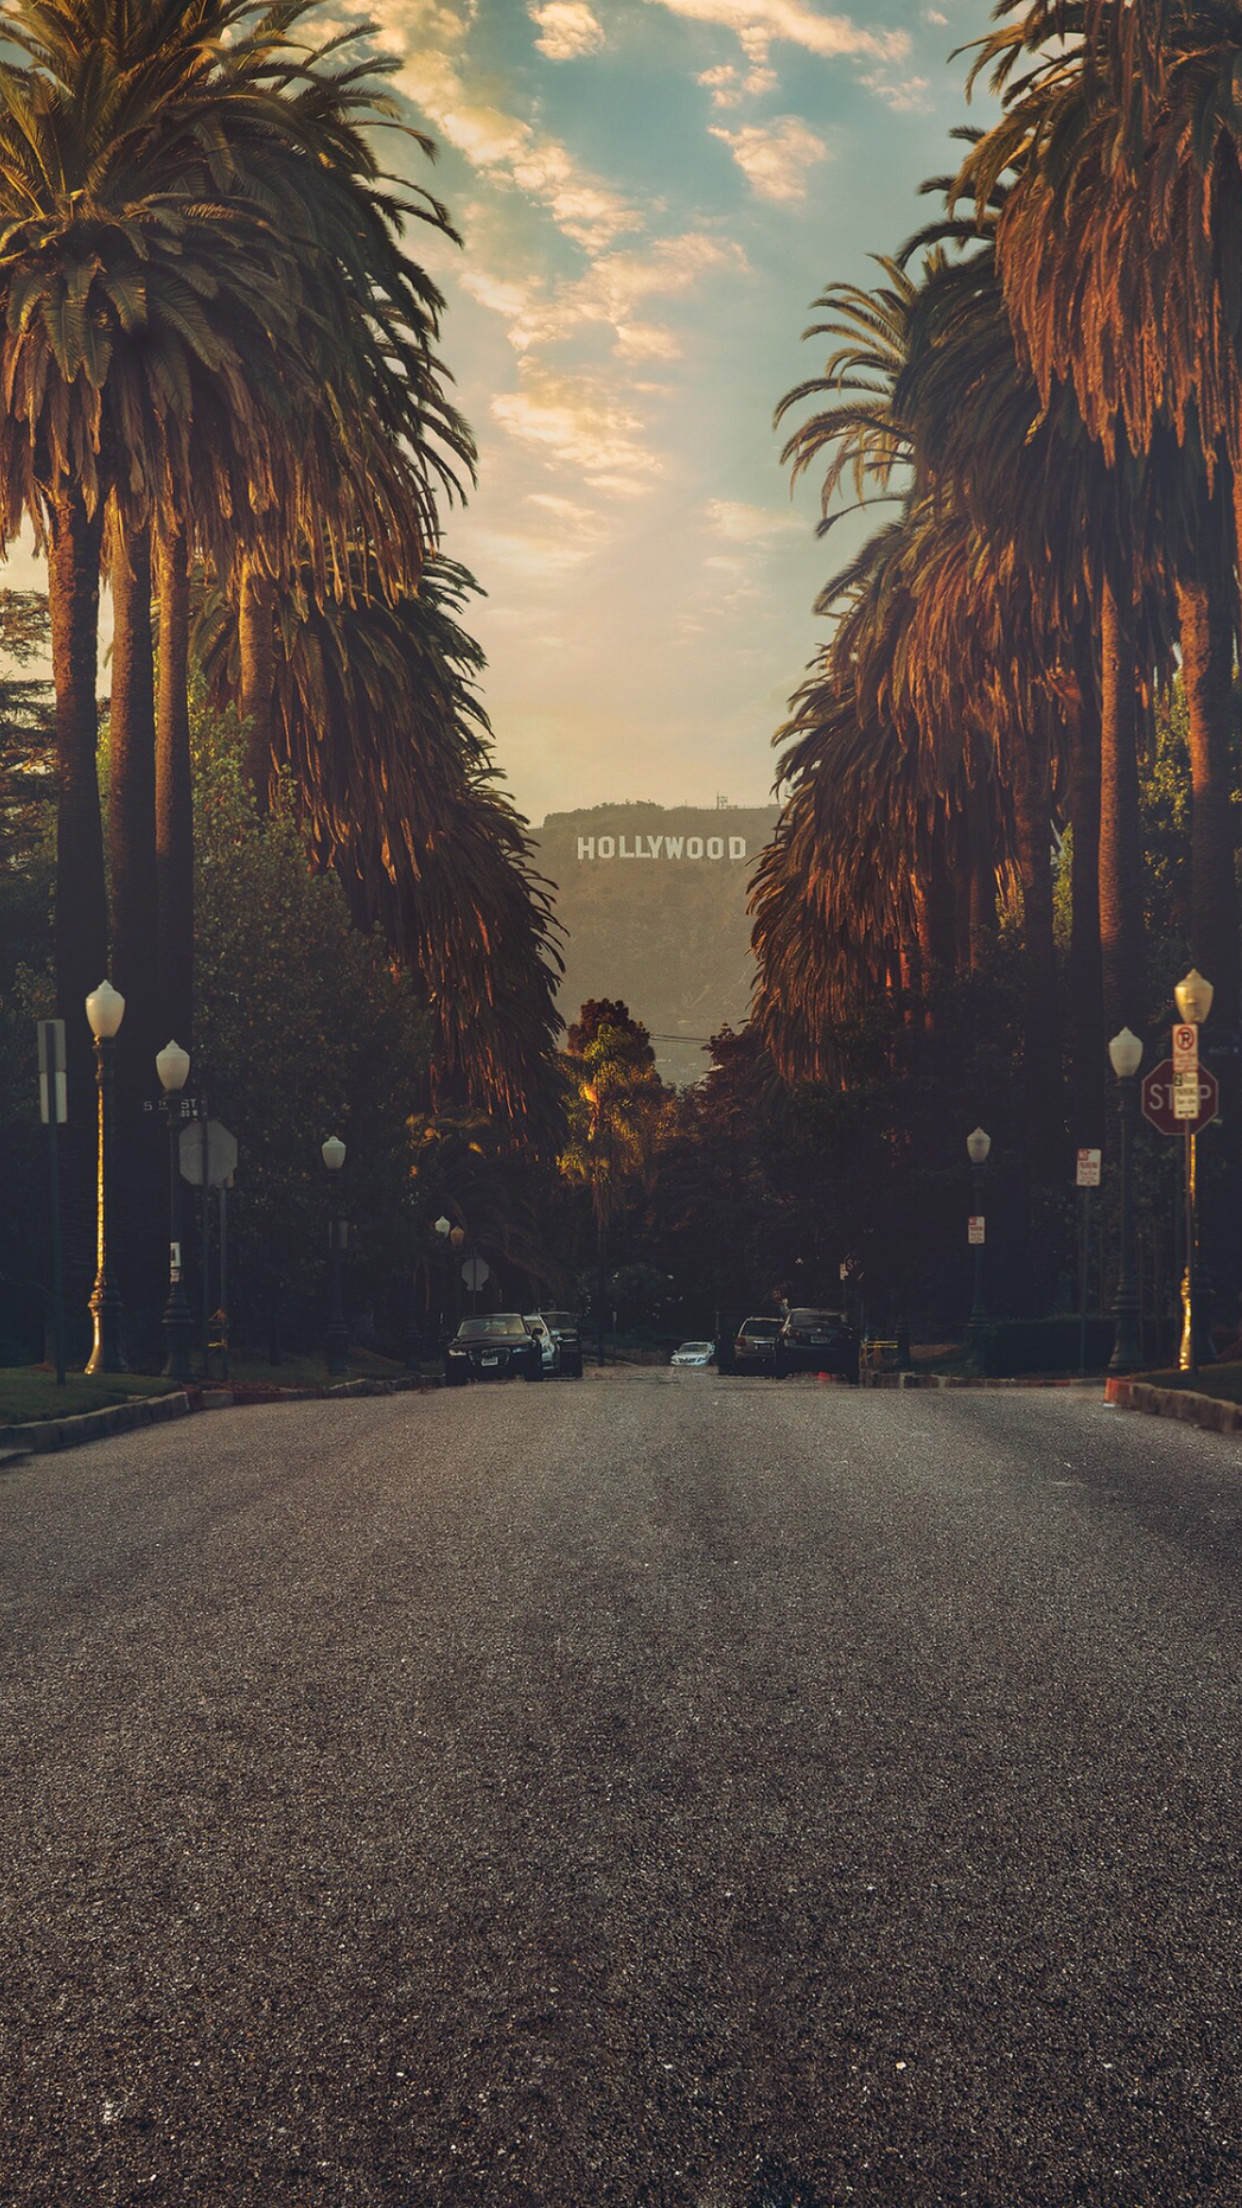 Hollywood Sign Wallpapers 59 Images